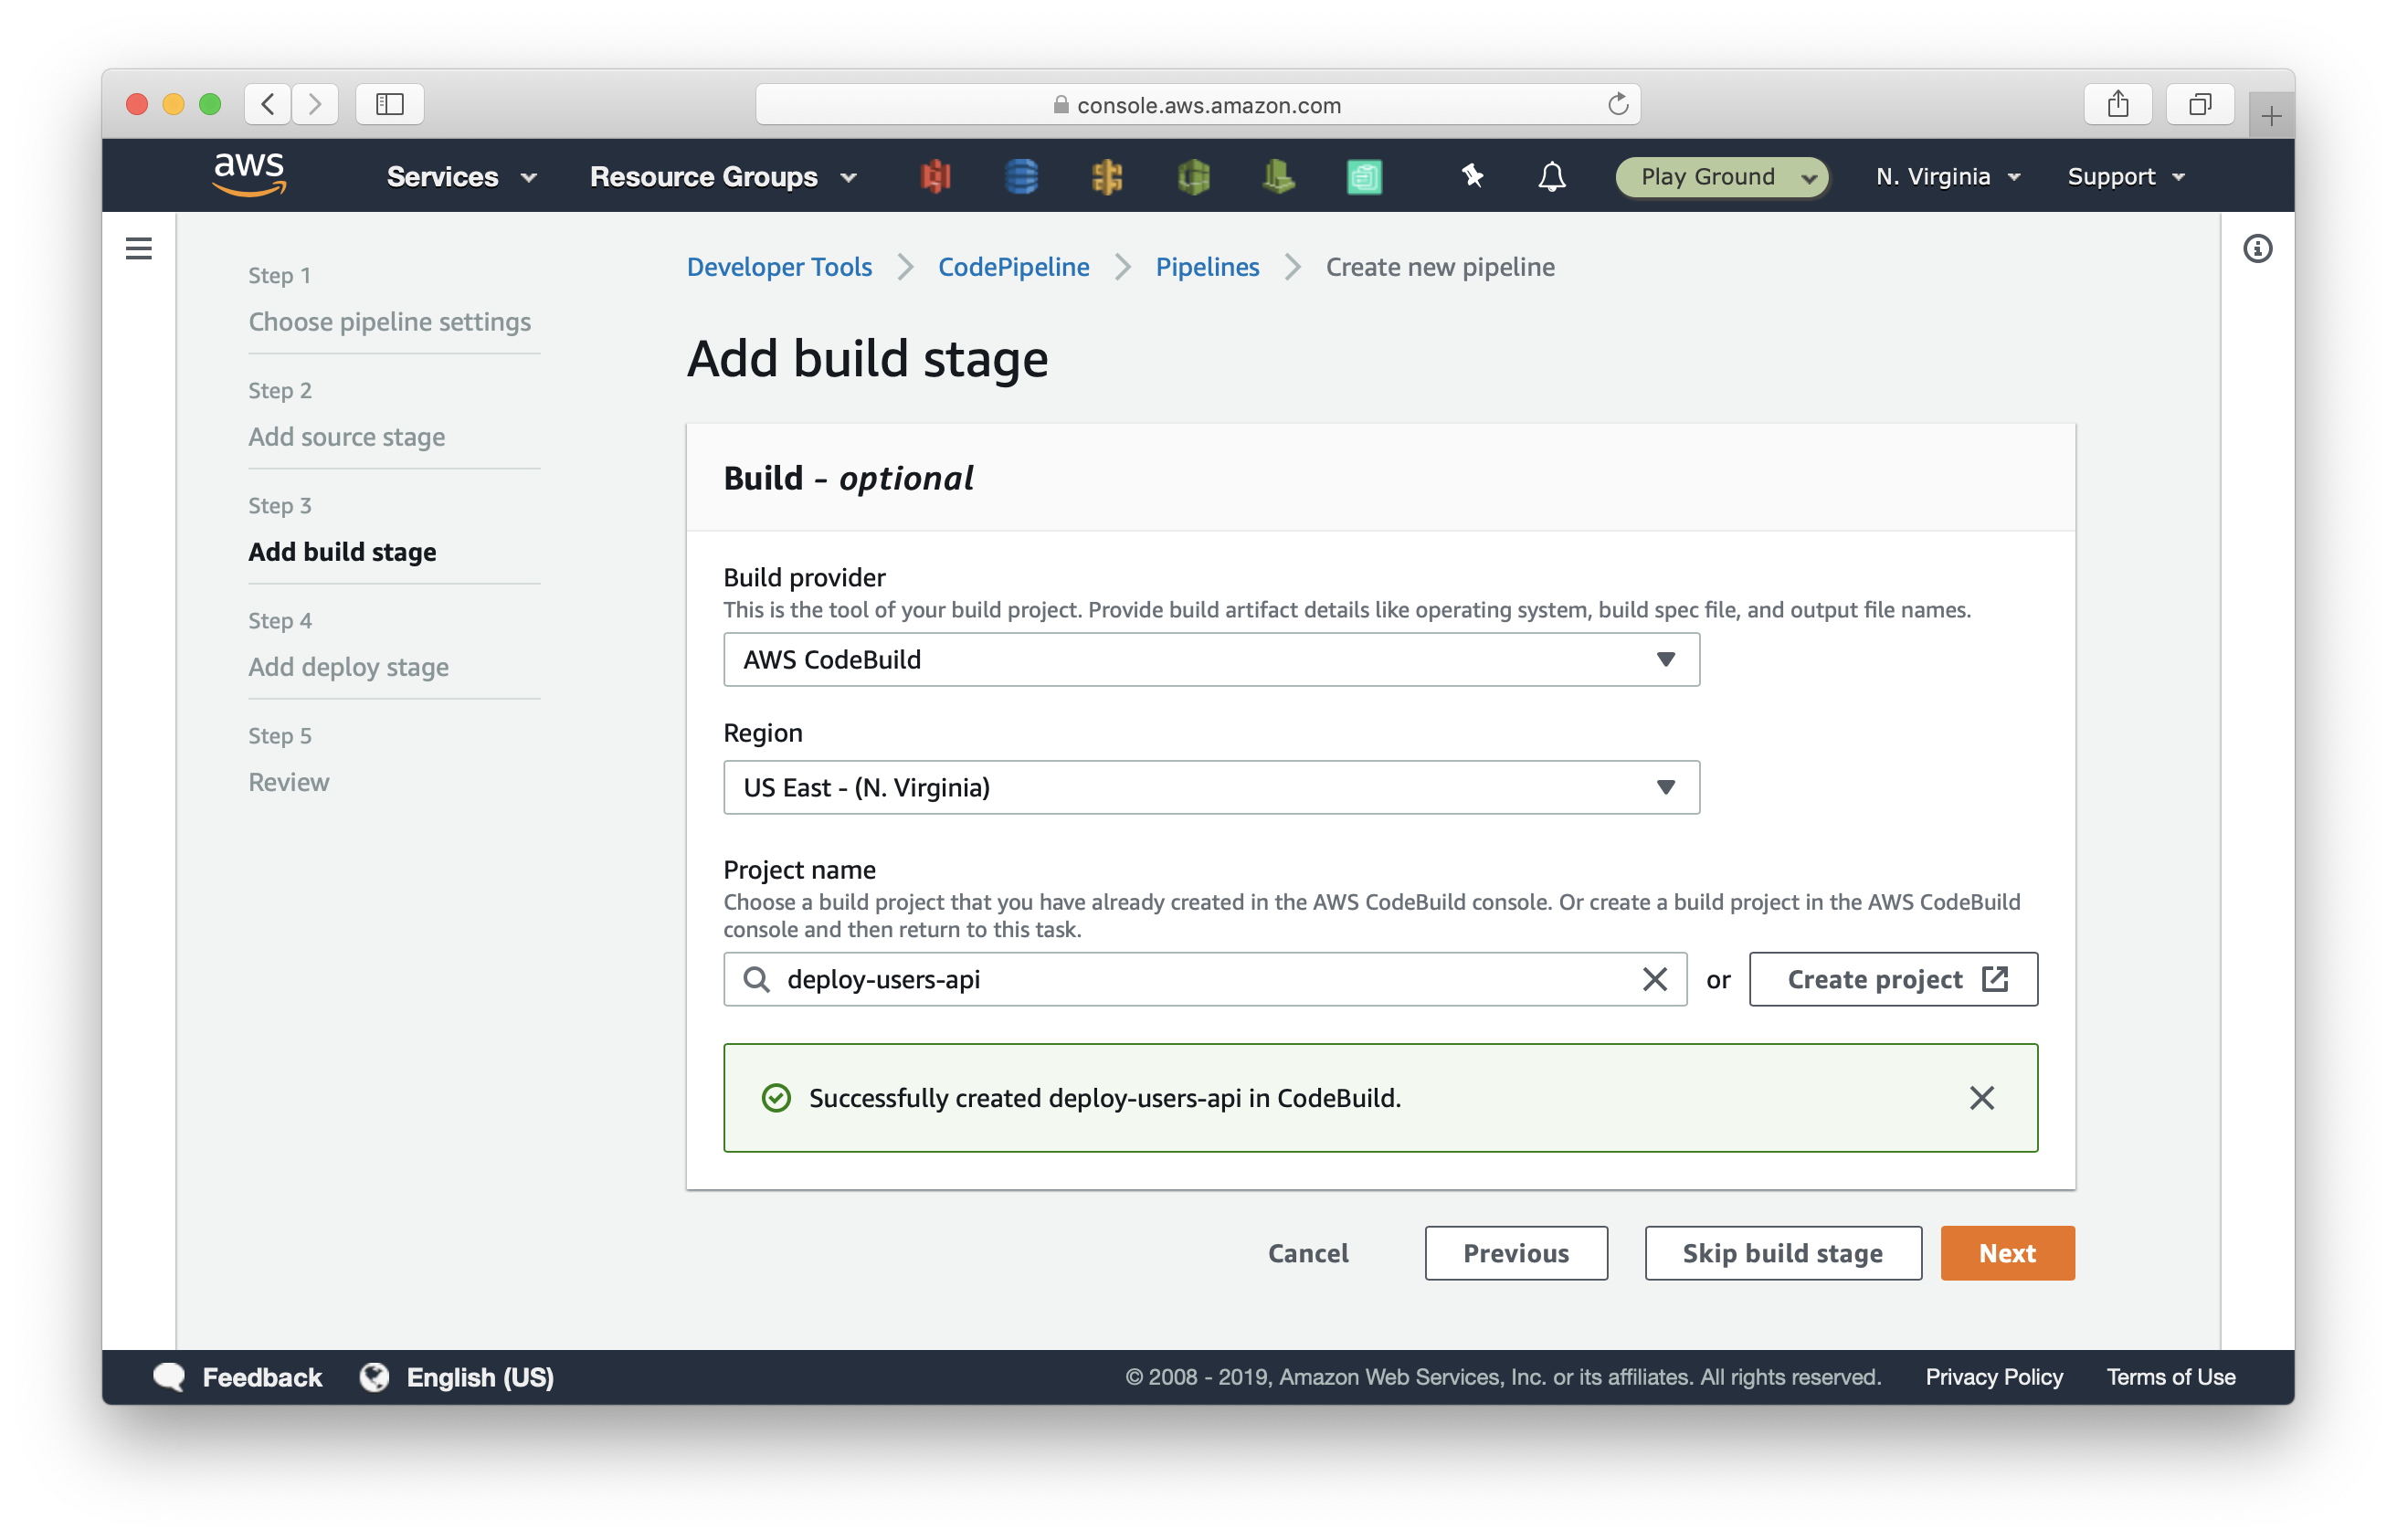 Add build stage in CodePipeline